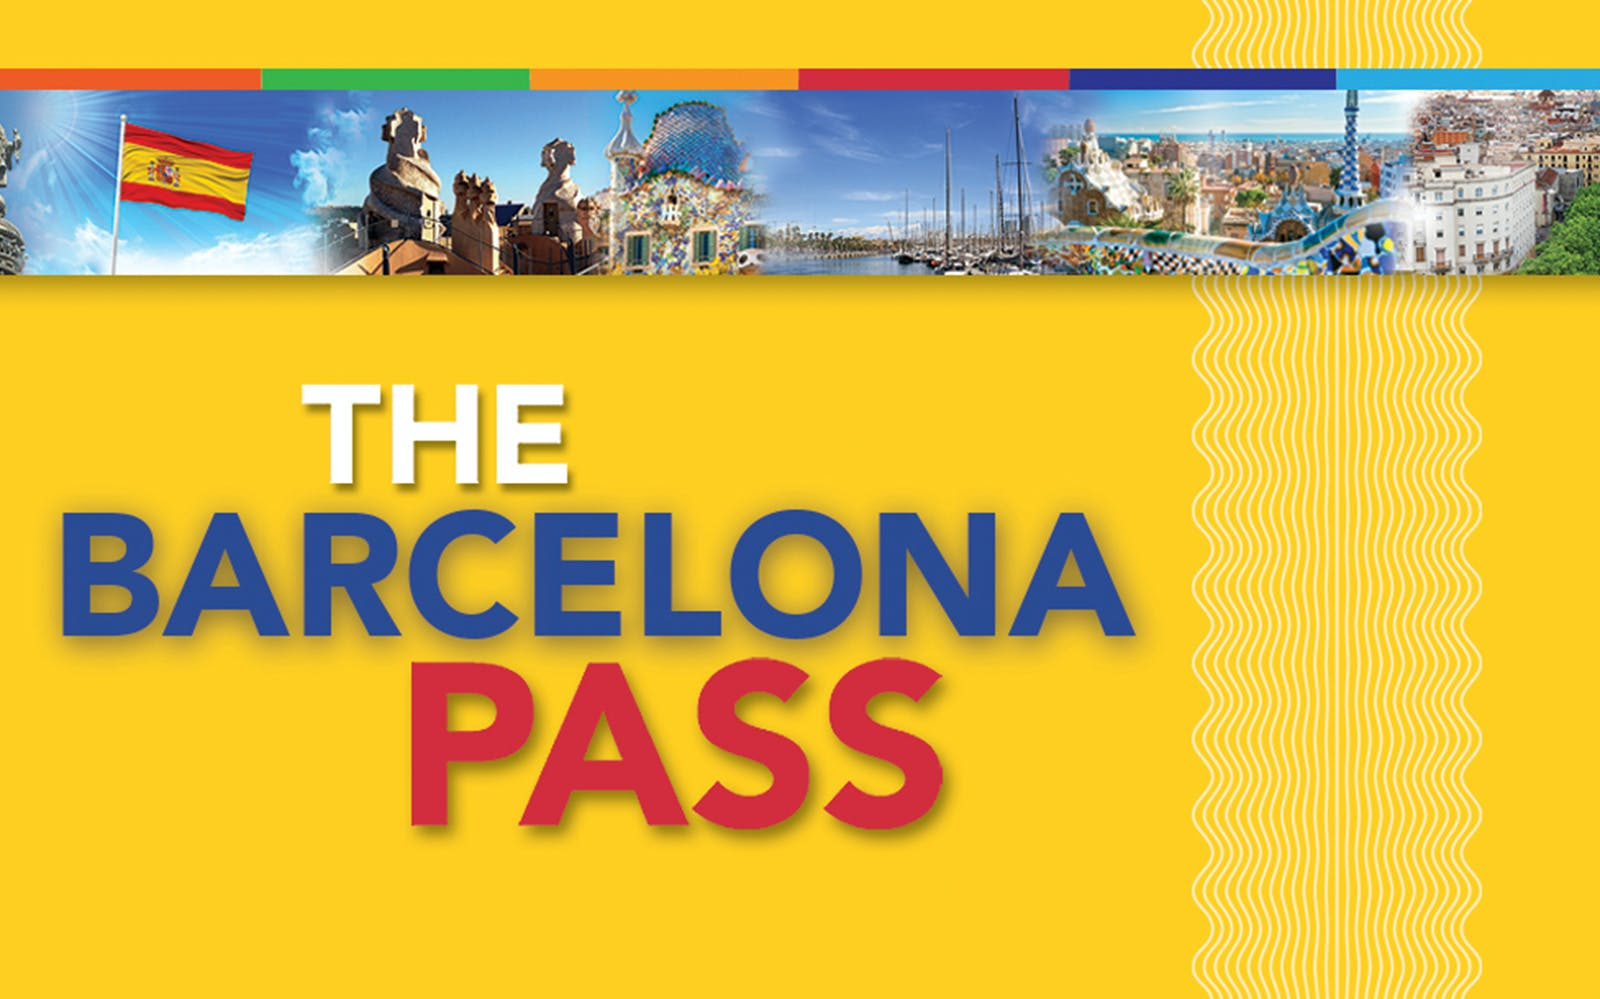 The Barcelona Pass - Unlimited Attractions Pass